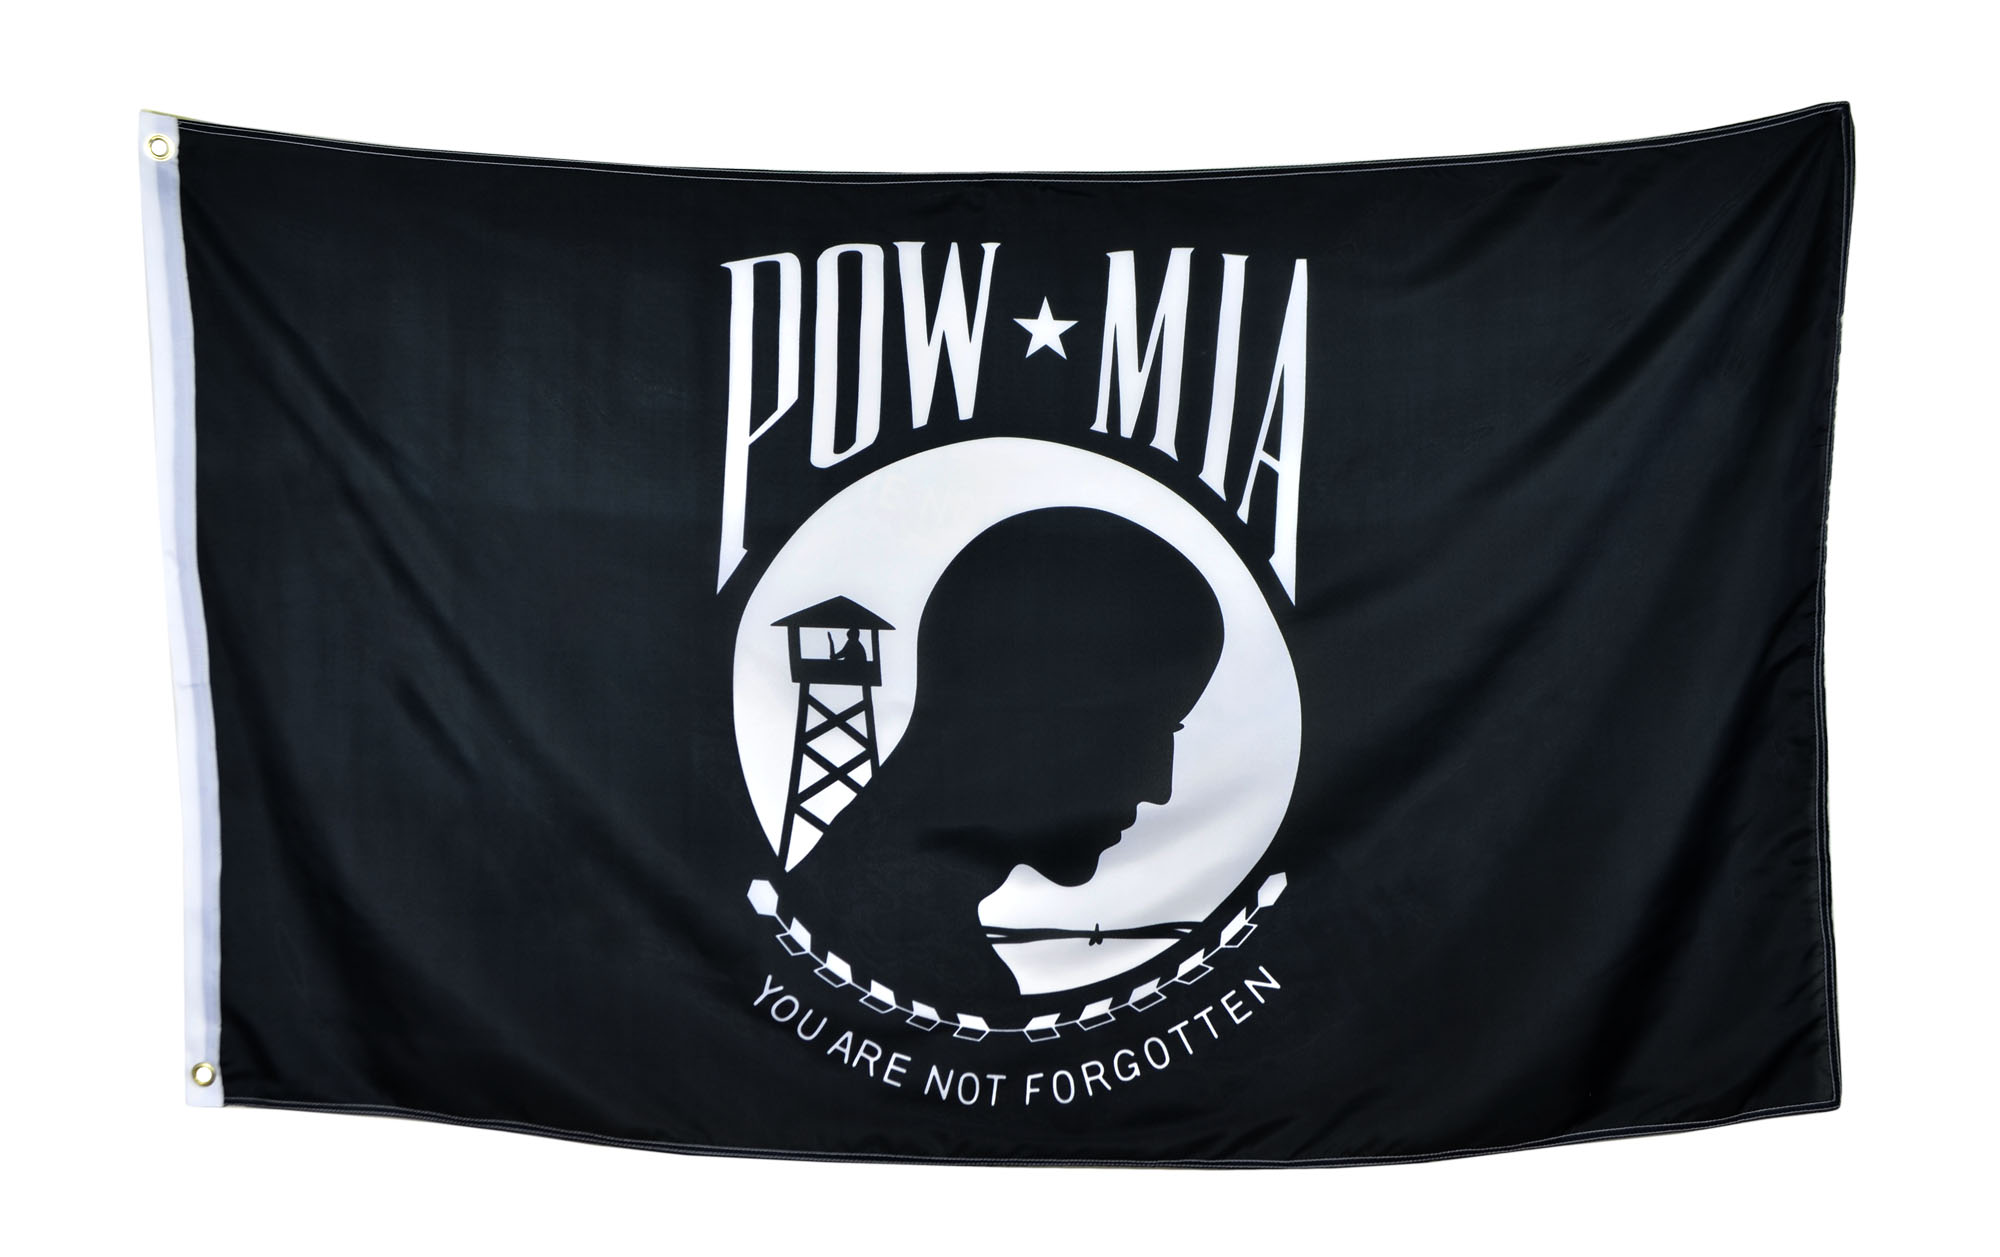 Shop72 - POW-MIA Black Flag You are Not Forgotten Prisoner of War 3x5ft Polyester